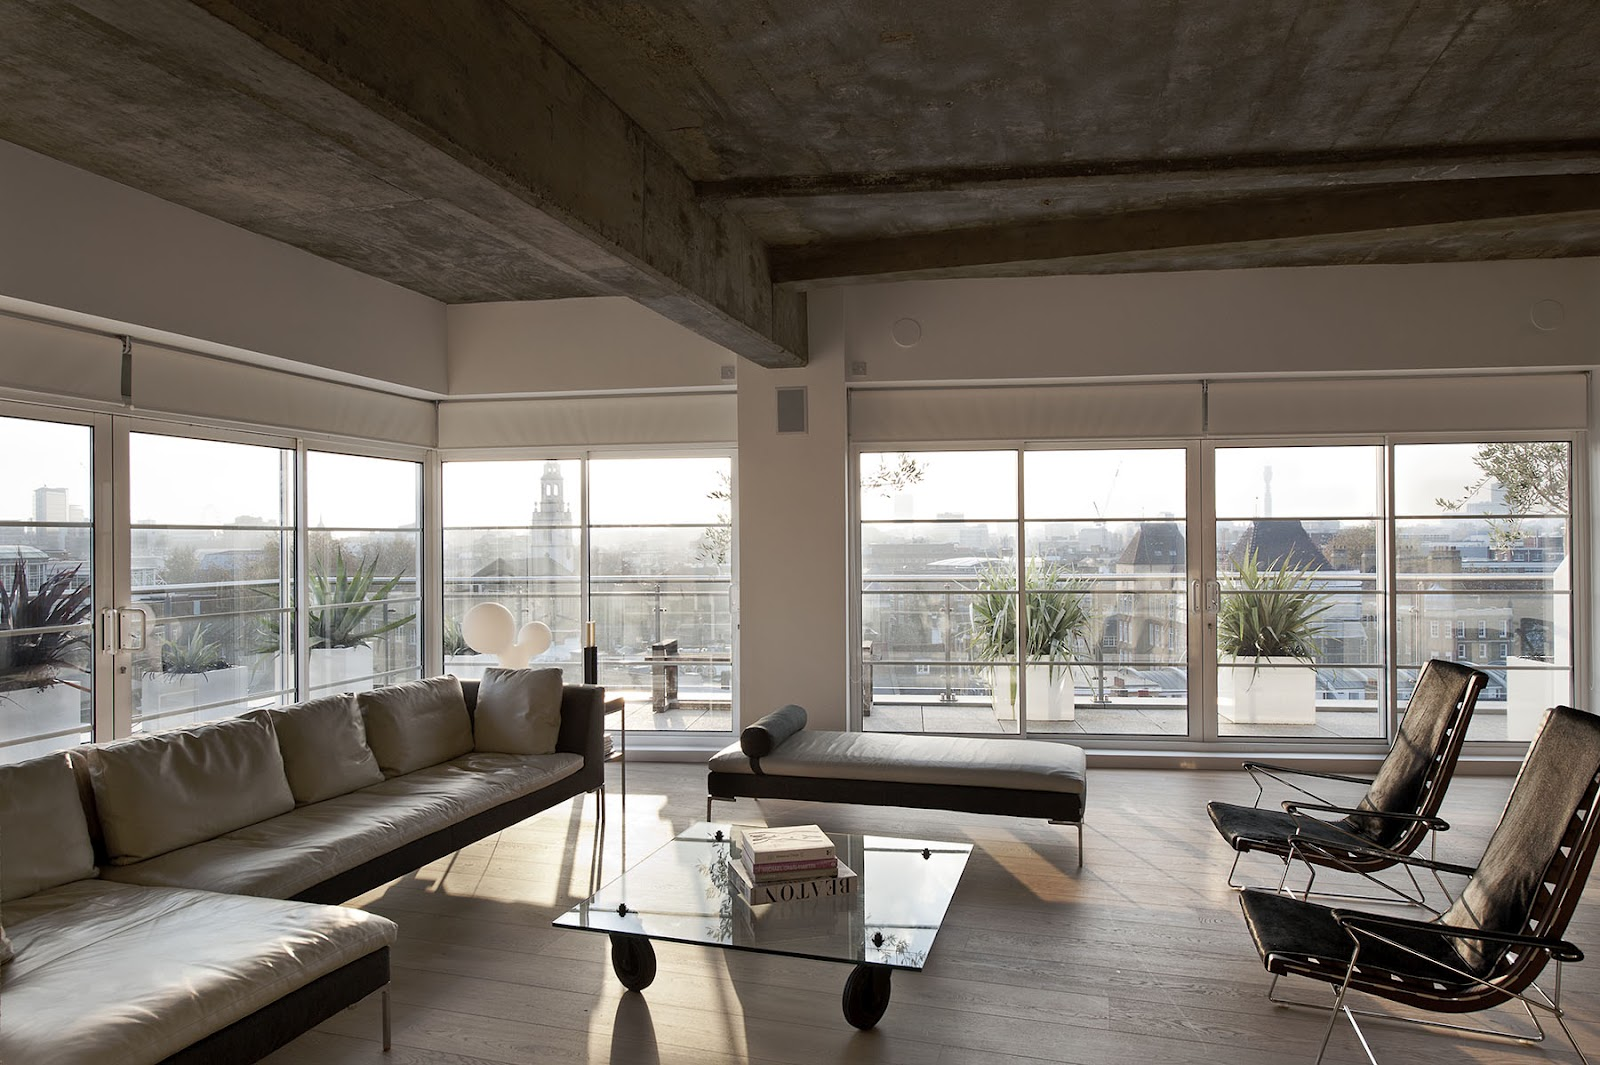 New home design outtakes william tozer 39 s london loft for Exposed ceiling design